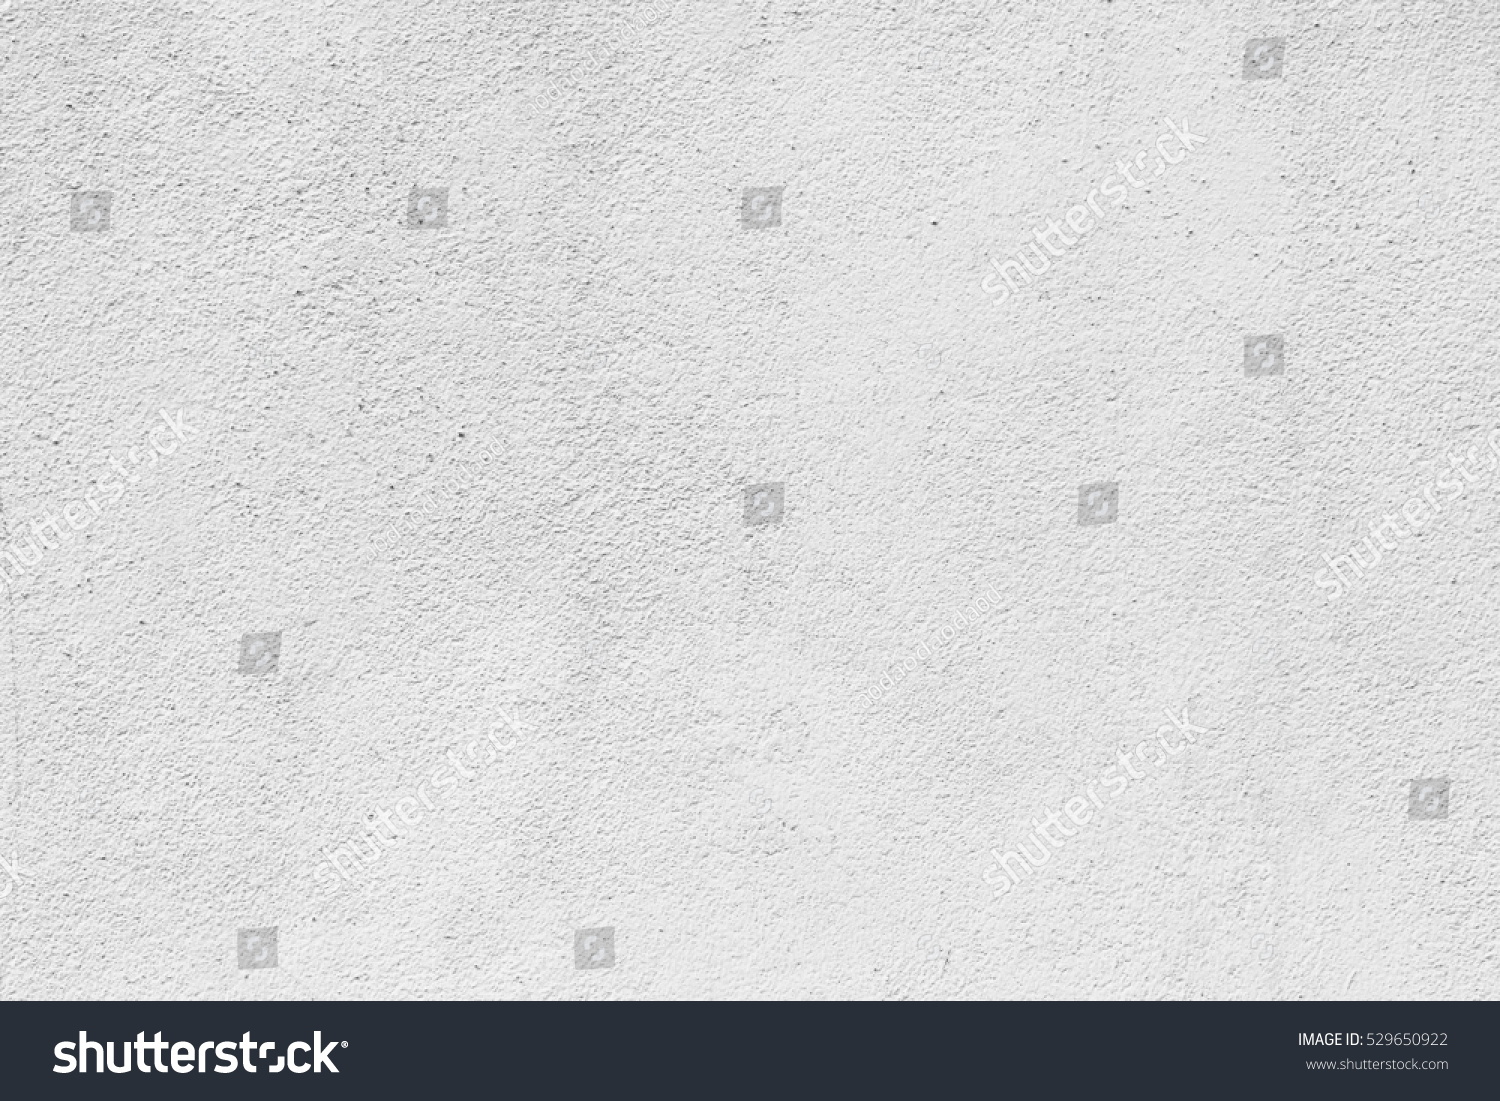 Concrete wall surface texture background stock photo for Wall surface texture